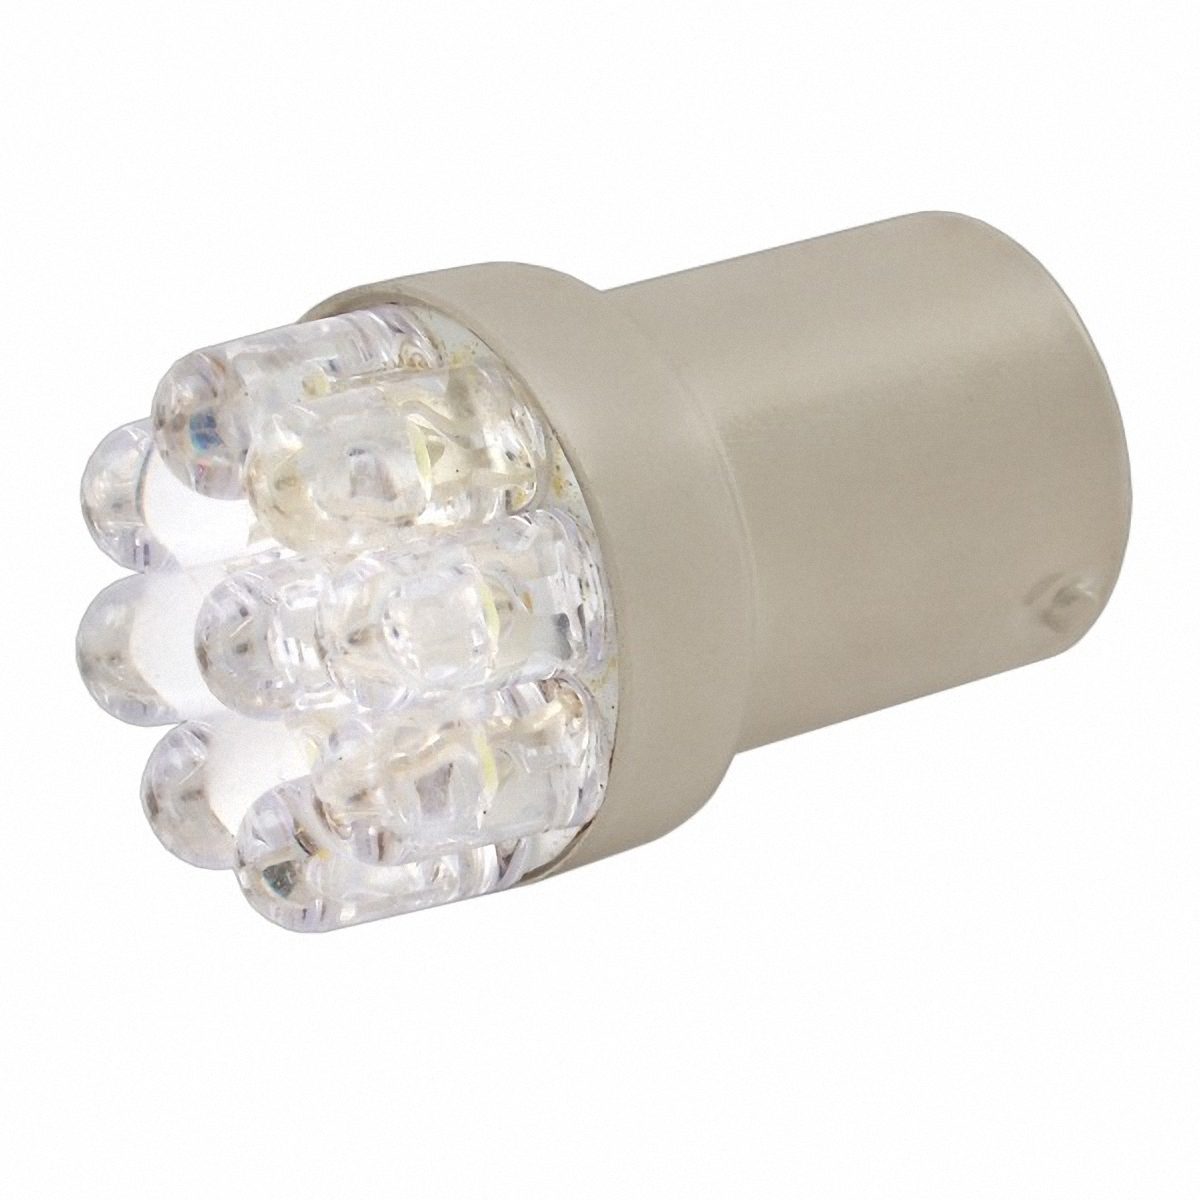 Skyway Автолампа диод T18(R10W). ST18-7LED/SG18-7LEDST18-7LED/SG18-7LED7 диодов с цоколем BA9S 1-контактная Белая